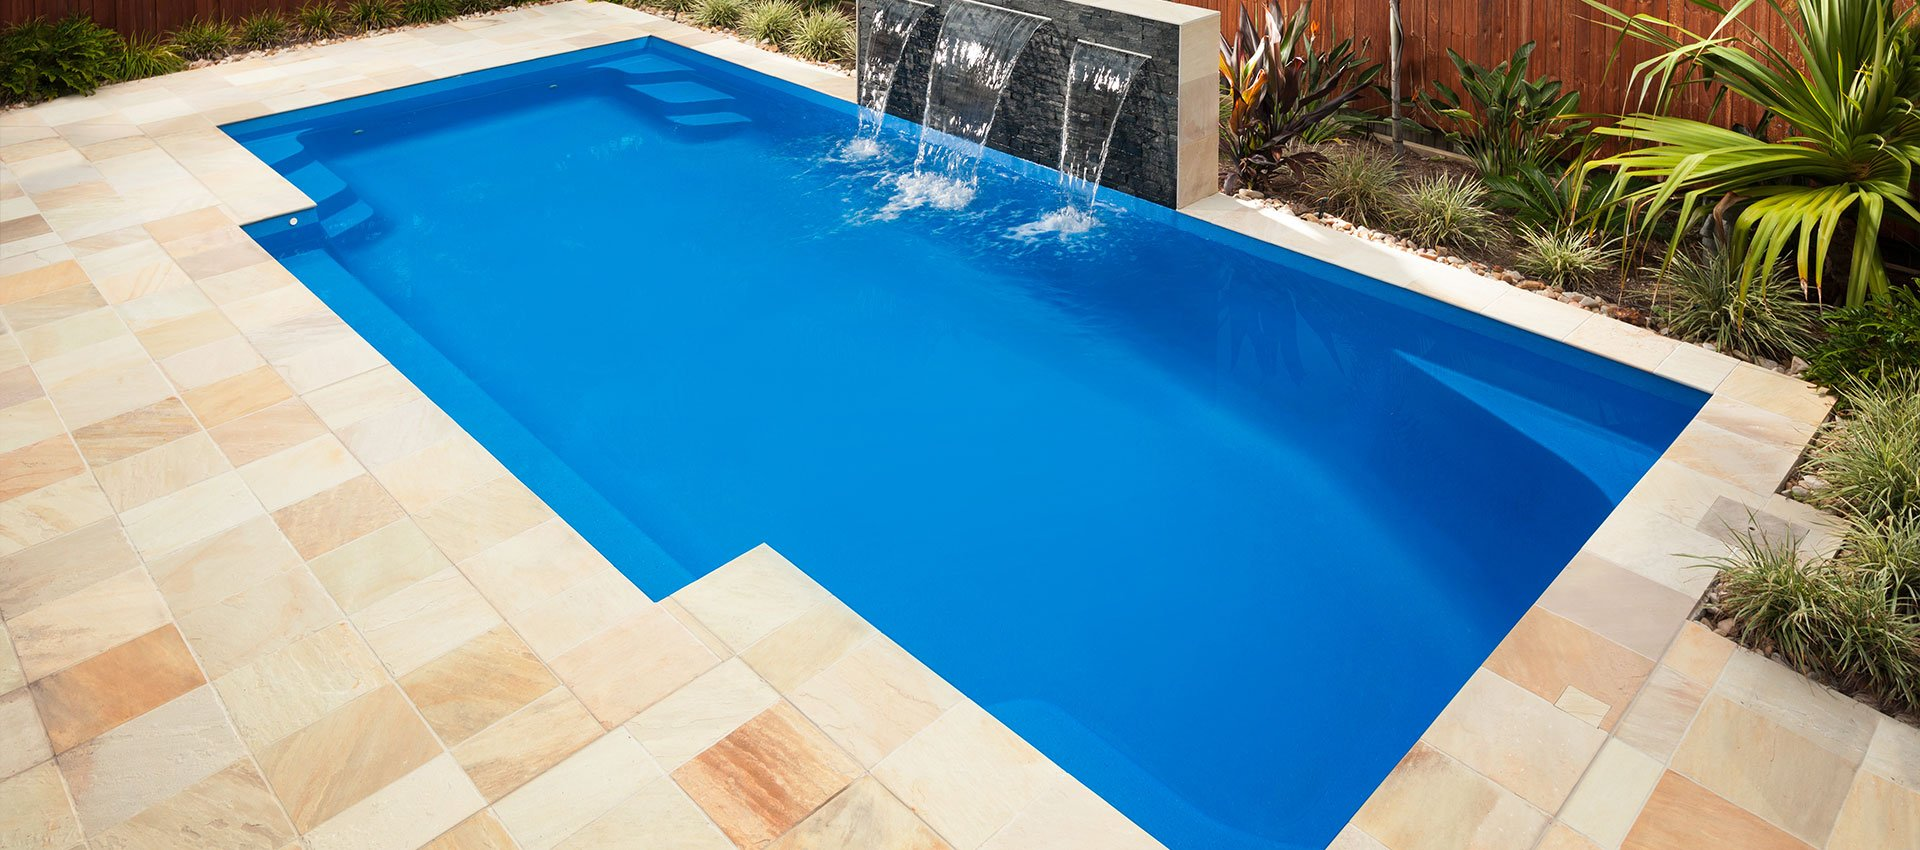 Hayman Pool 6m large